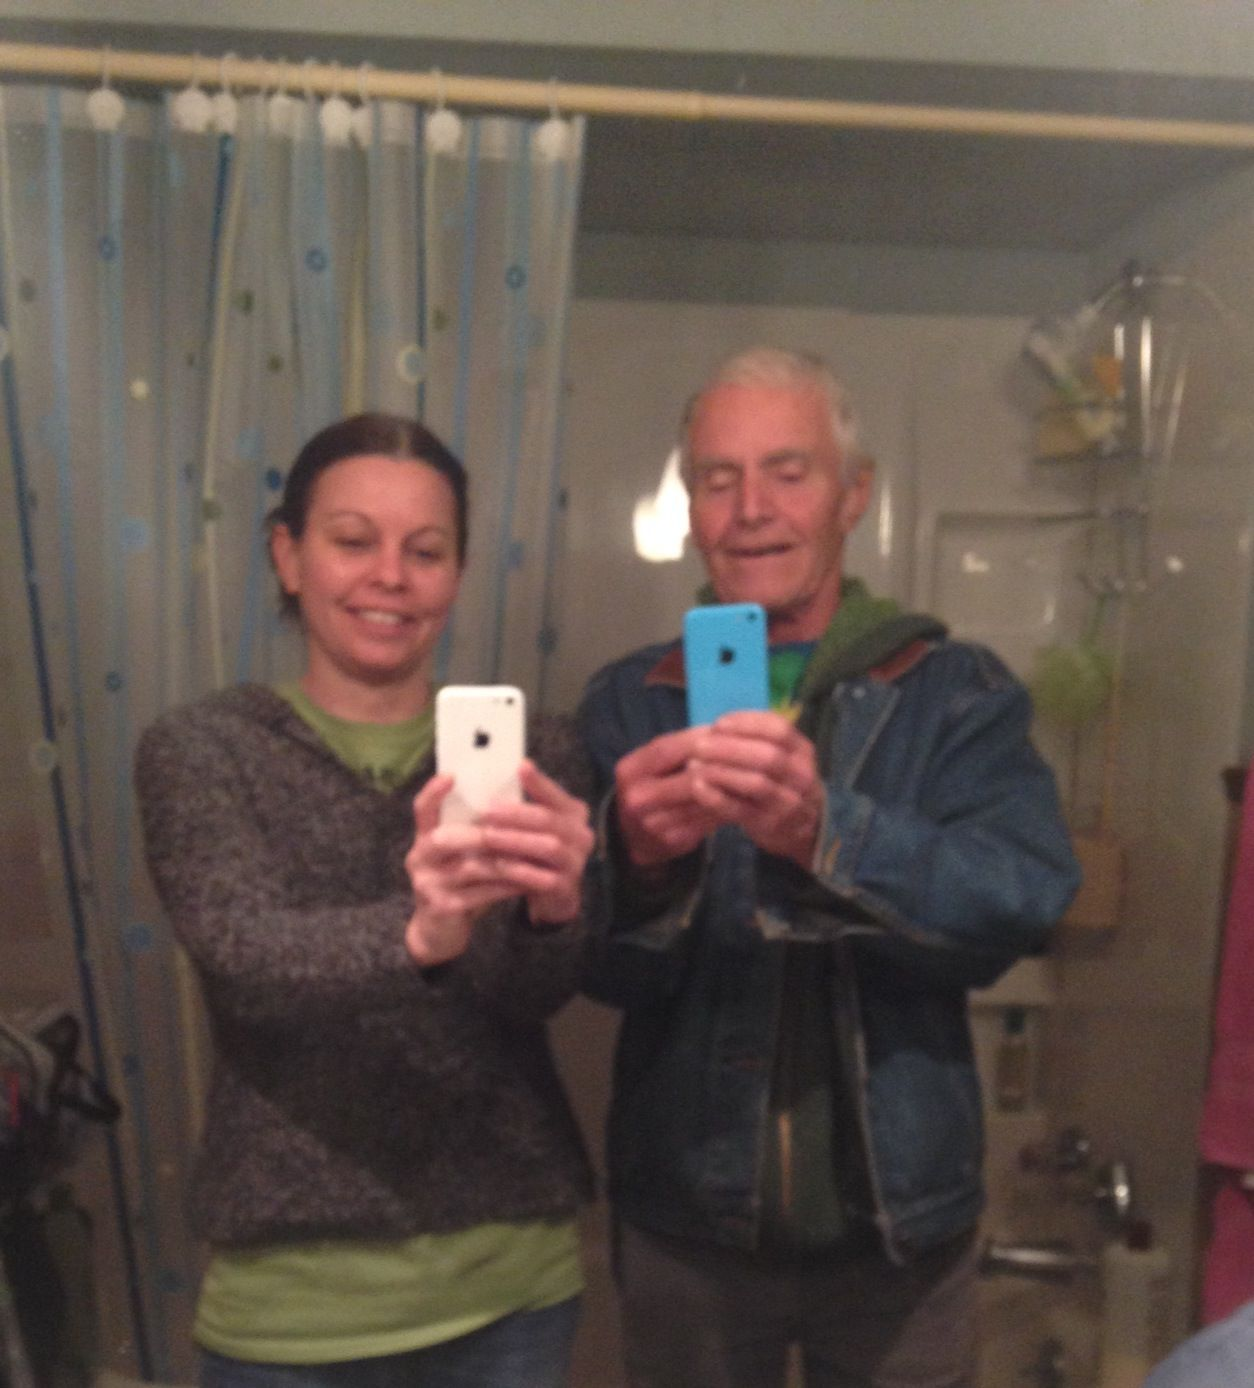 Kate & Don | Mirror selfie, Selfie, Old and new